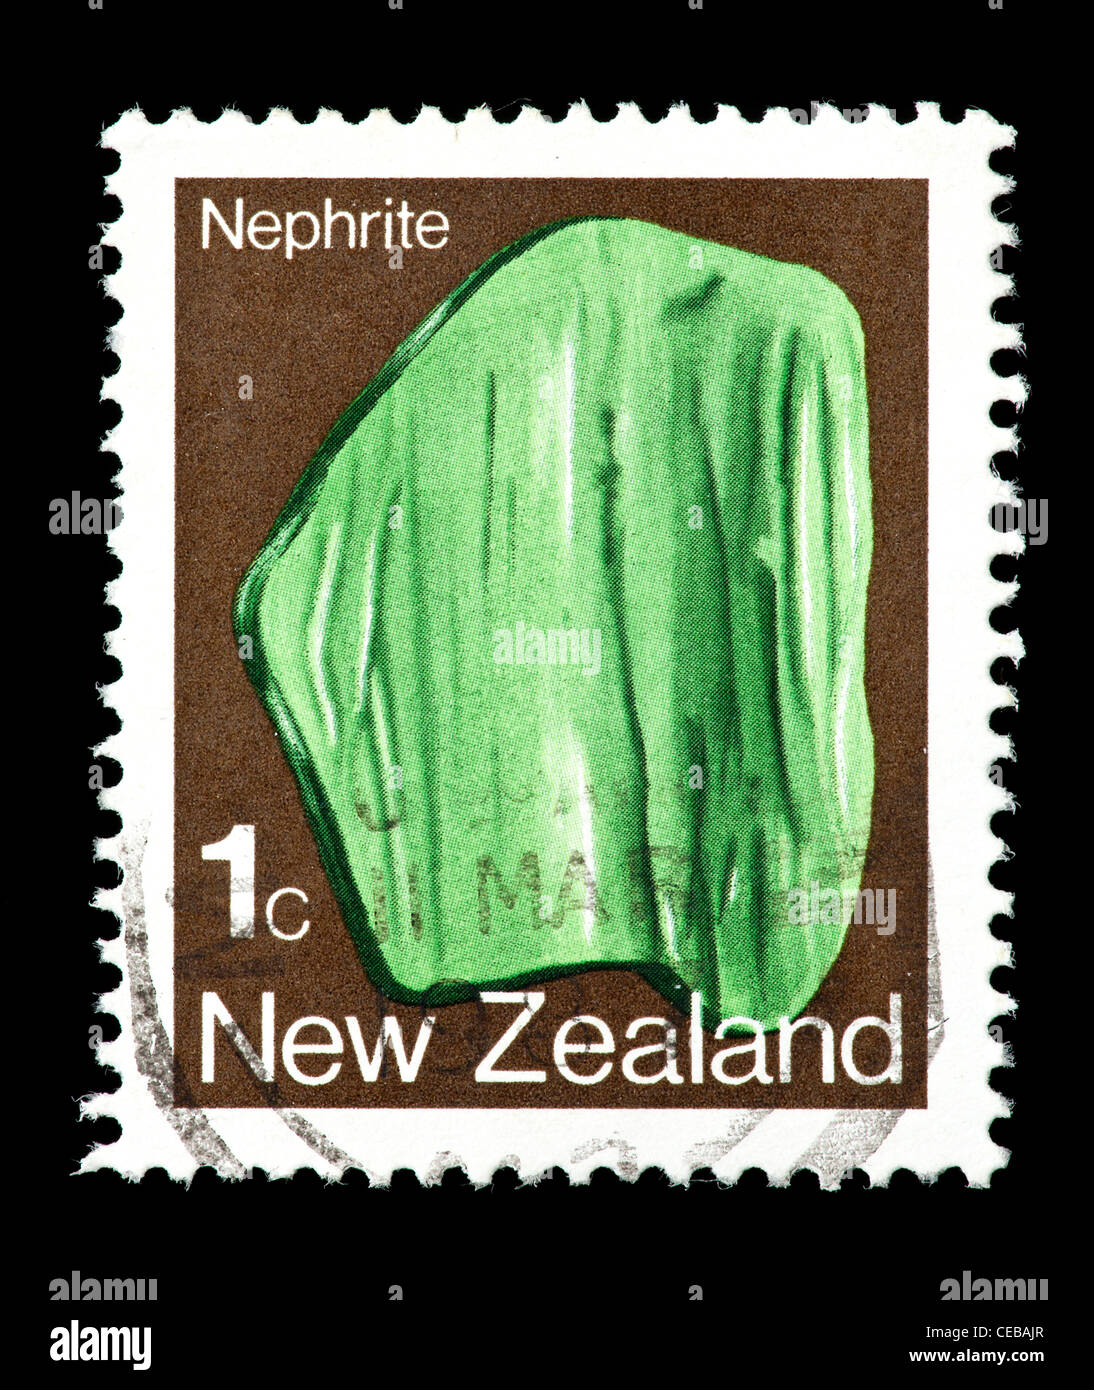 Postage stamp from New Zealand depicting nephrite crystals Stock Photo